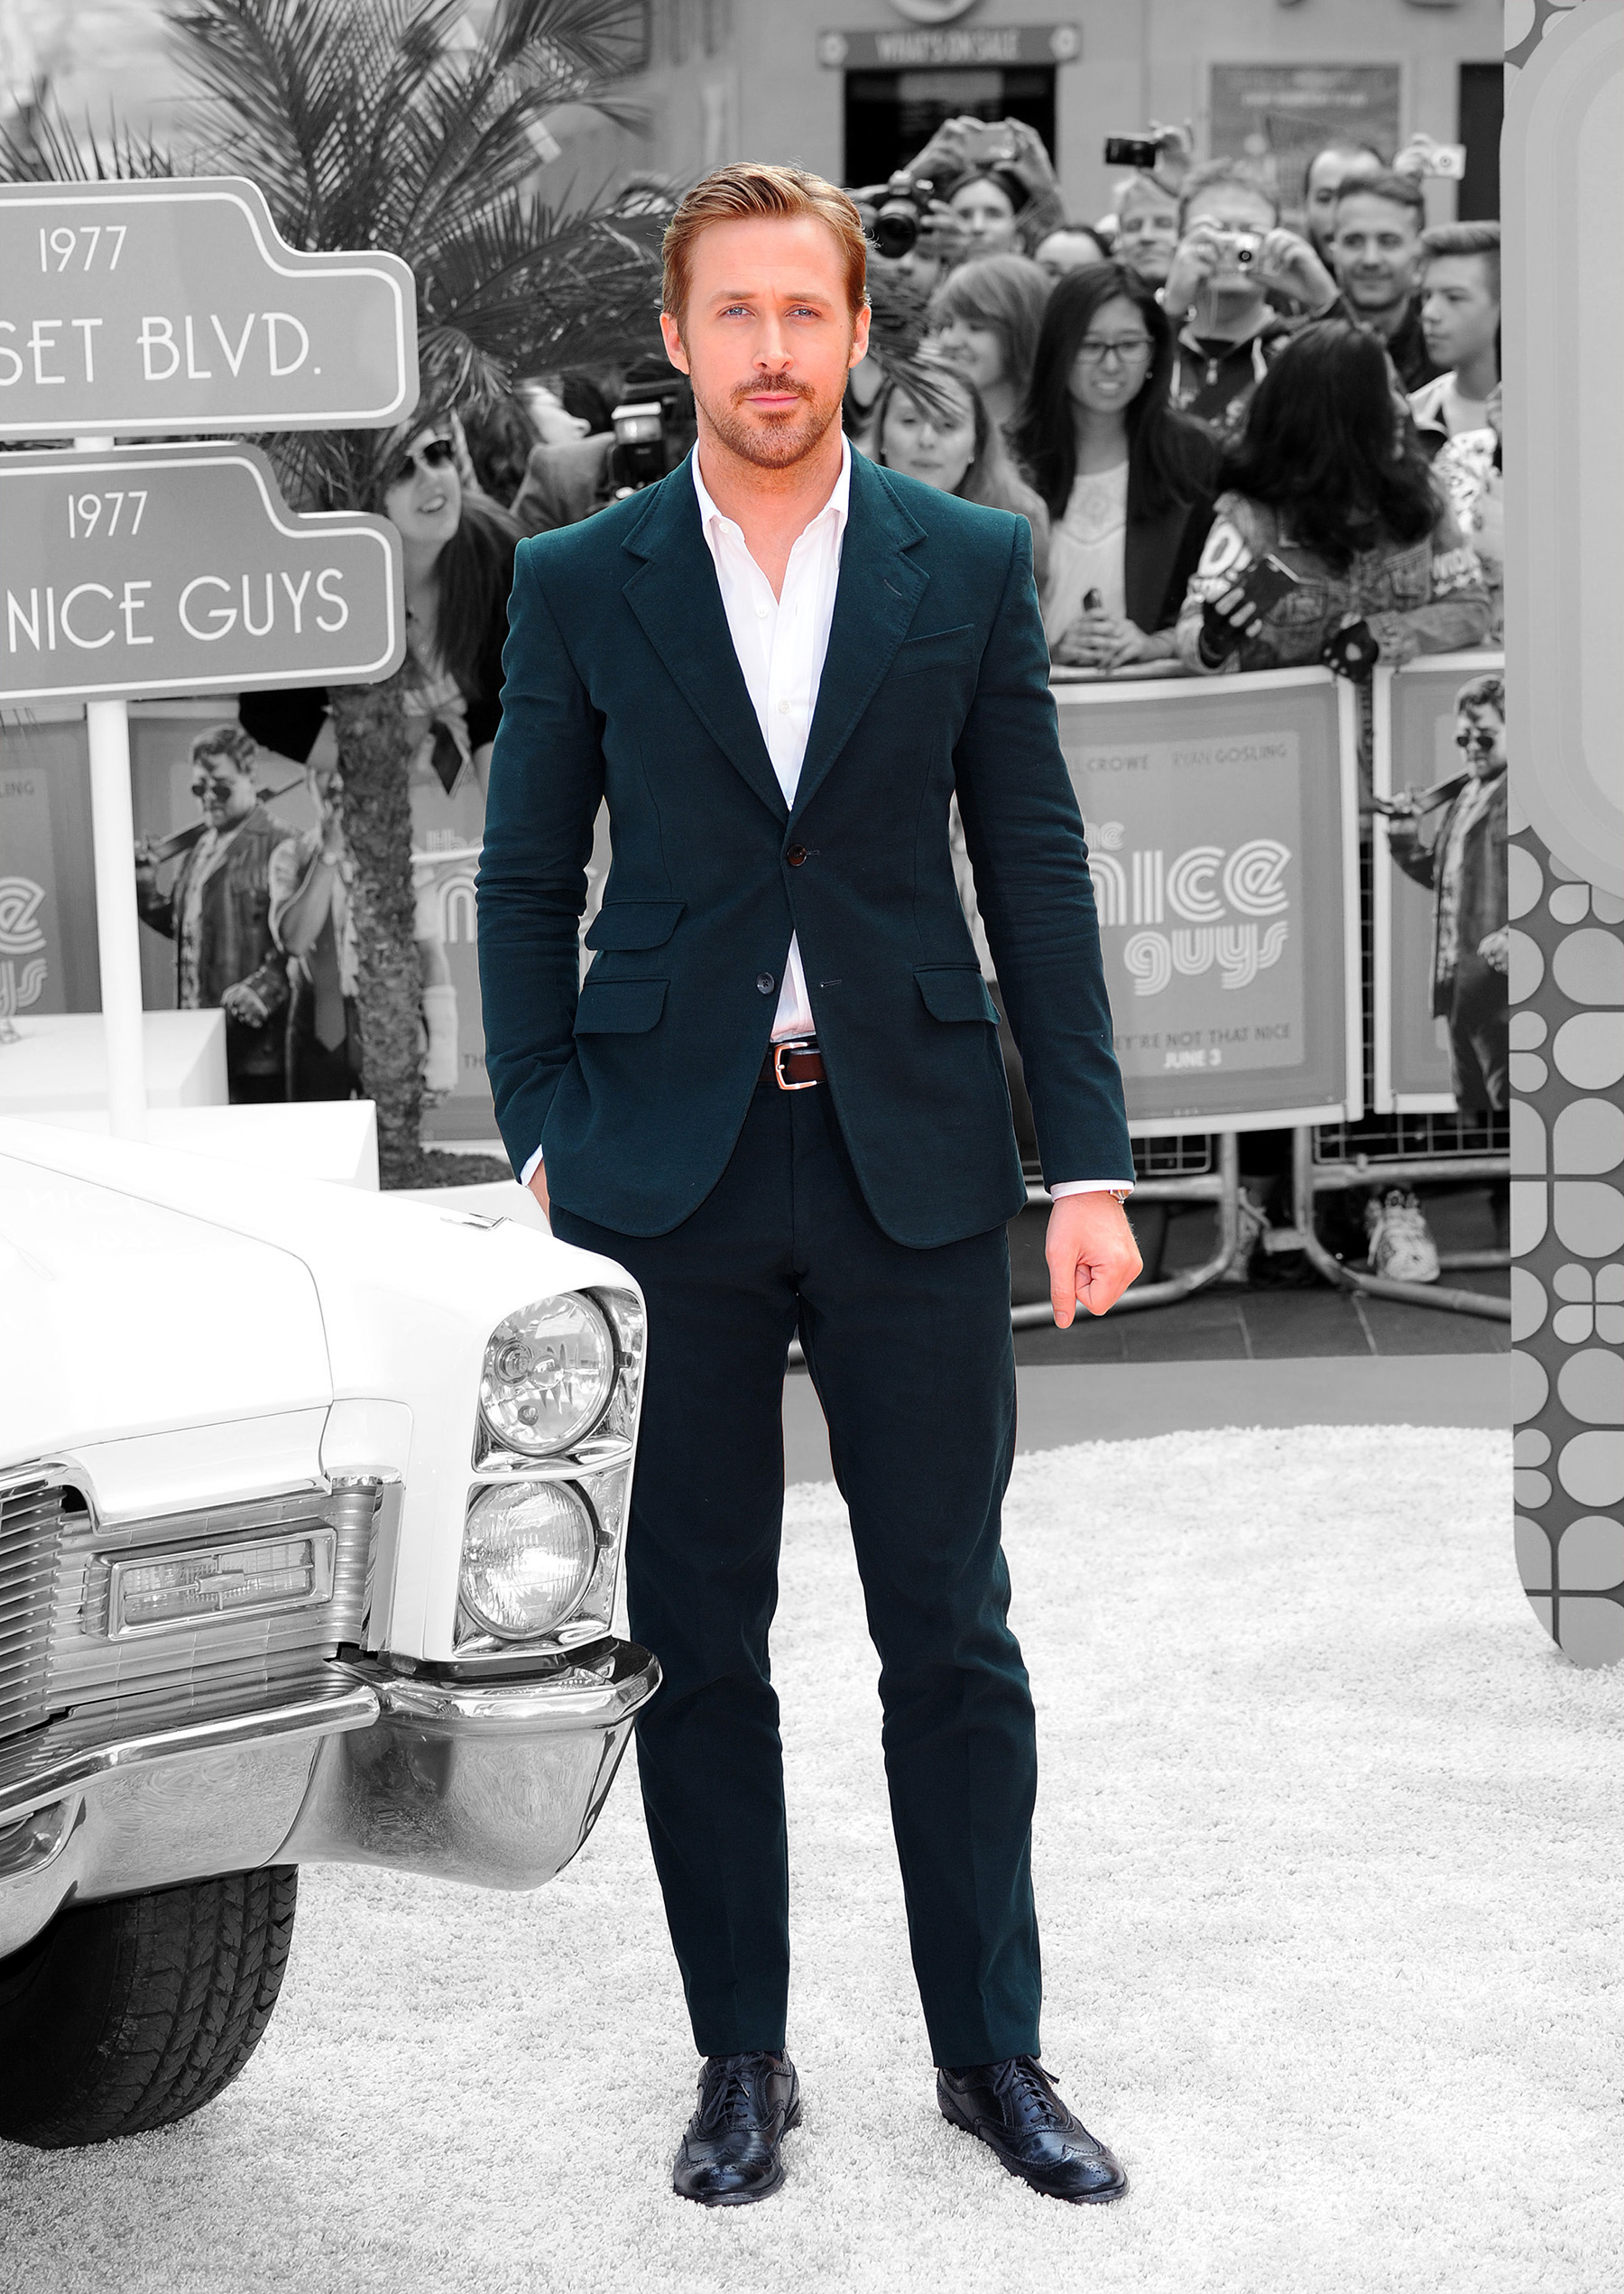 ryan gosling_cover-fotka_GettyImages